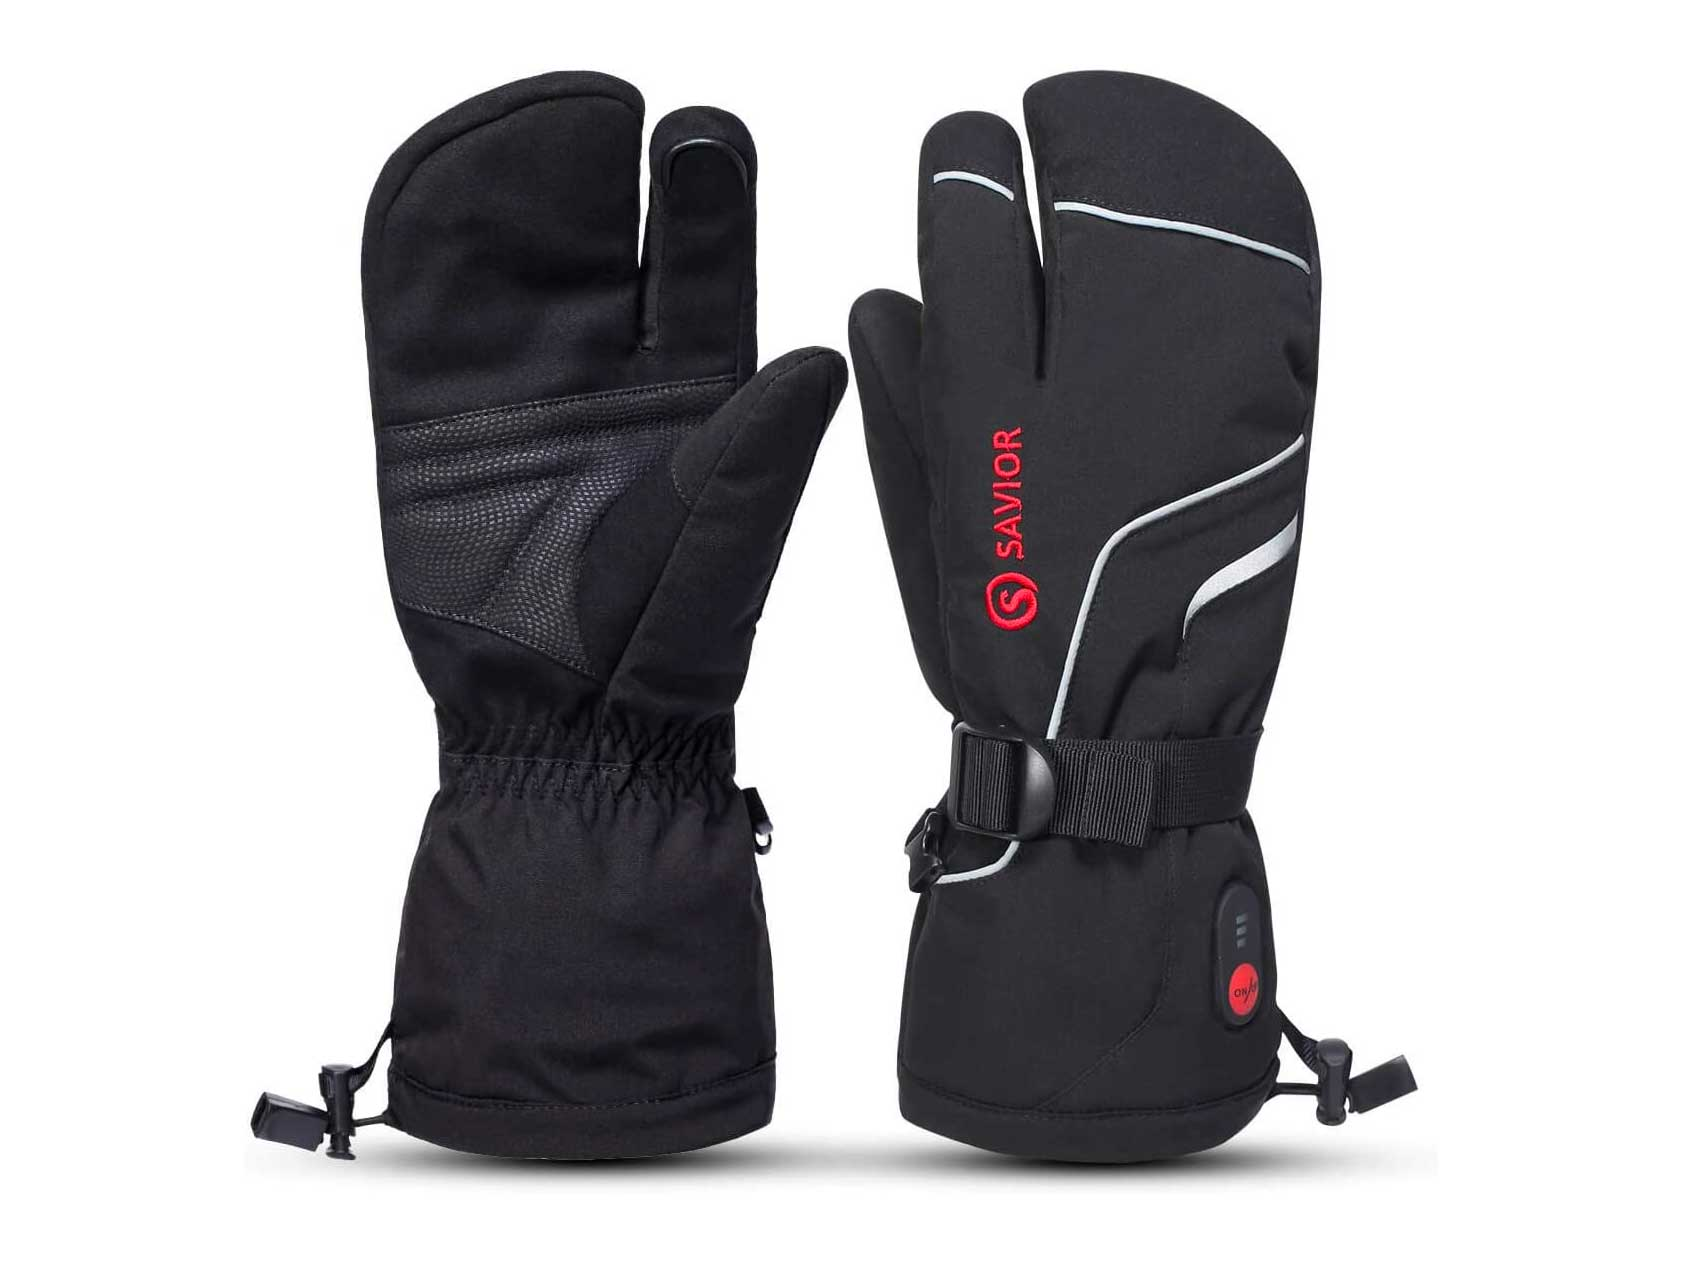 SAVIOR HEAT Heated Ski Mittens, Kids to Adult Unisex, Rechargeable Battery Operated Electric Heating Gloves